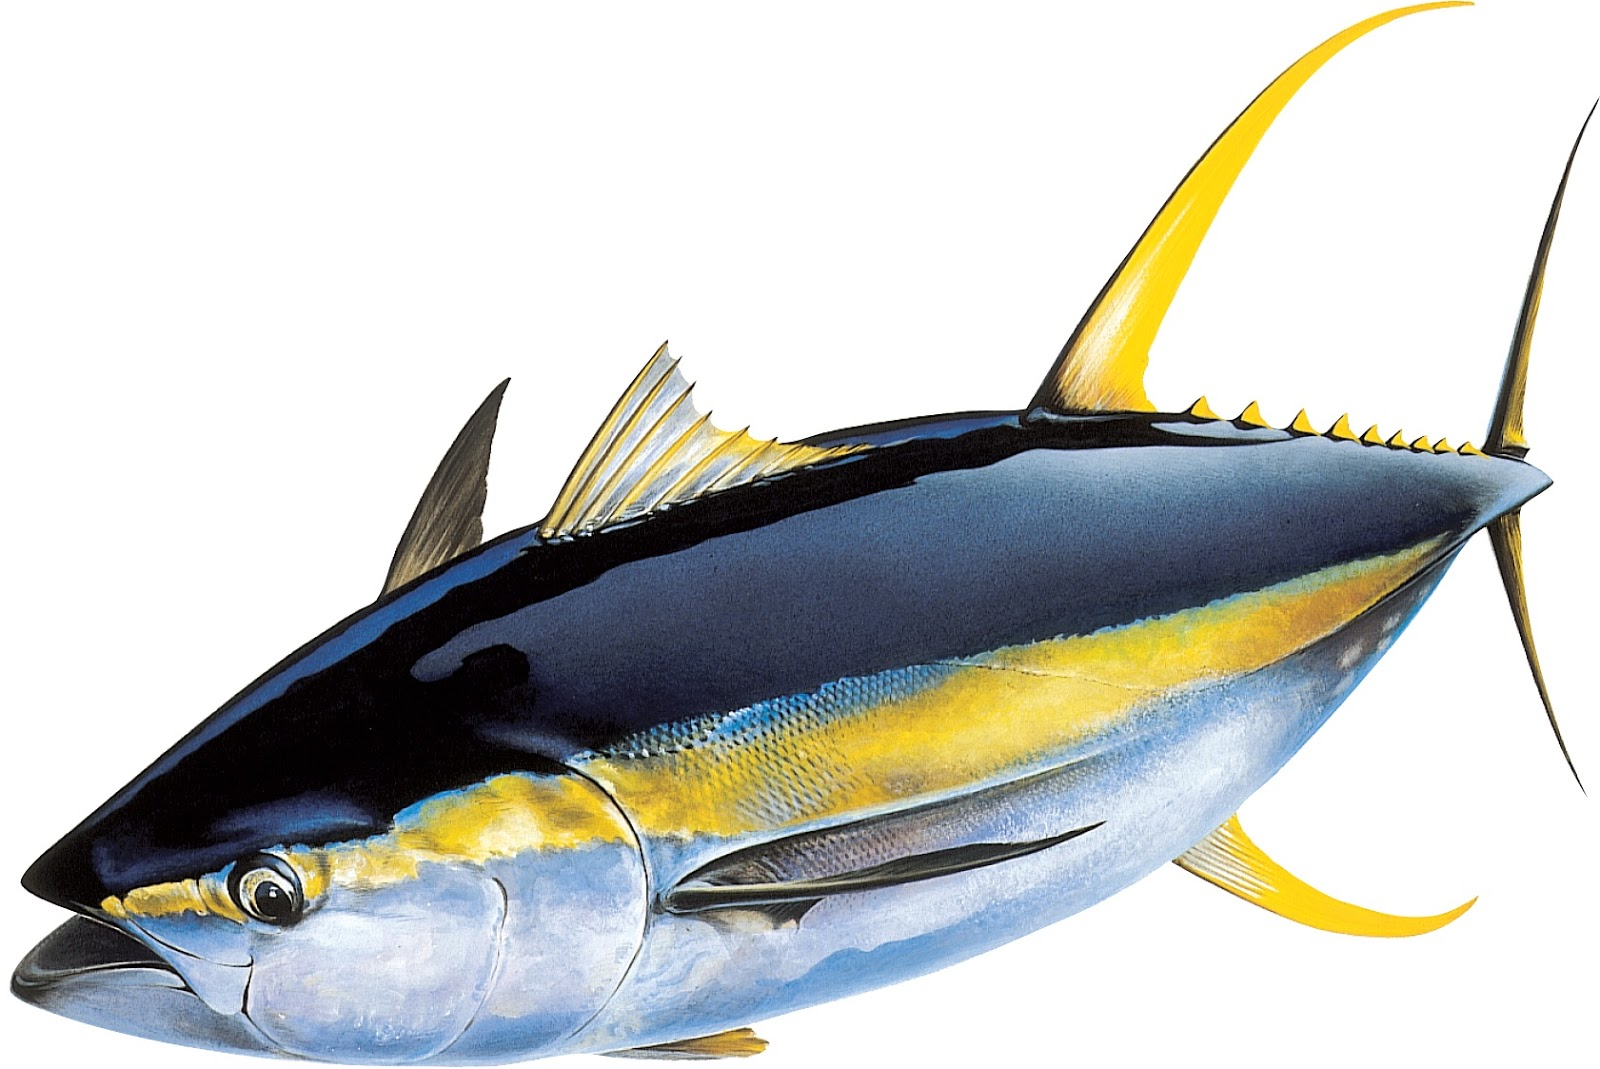 Making Yellowfin Tuna Hg Product For New Tuna Fish Factory